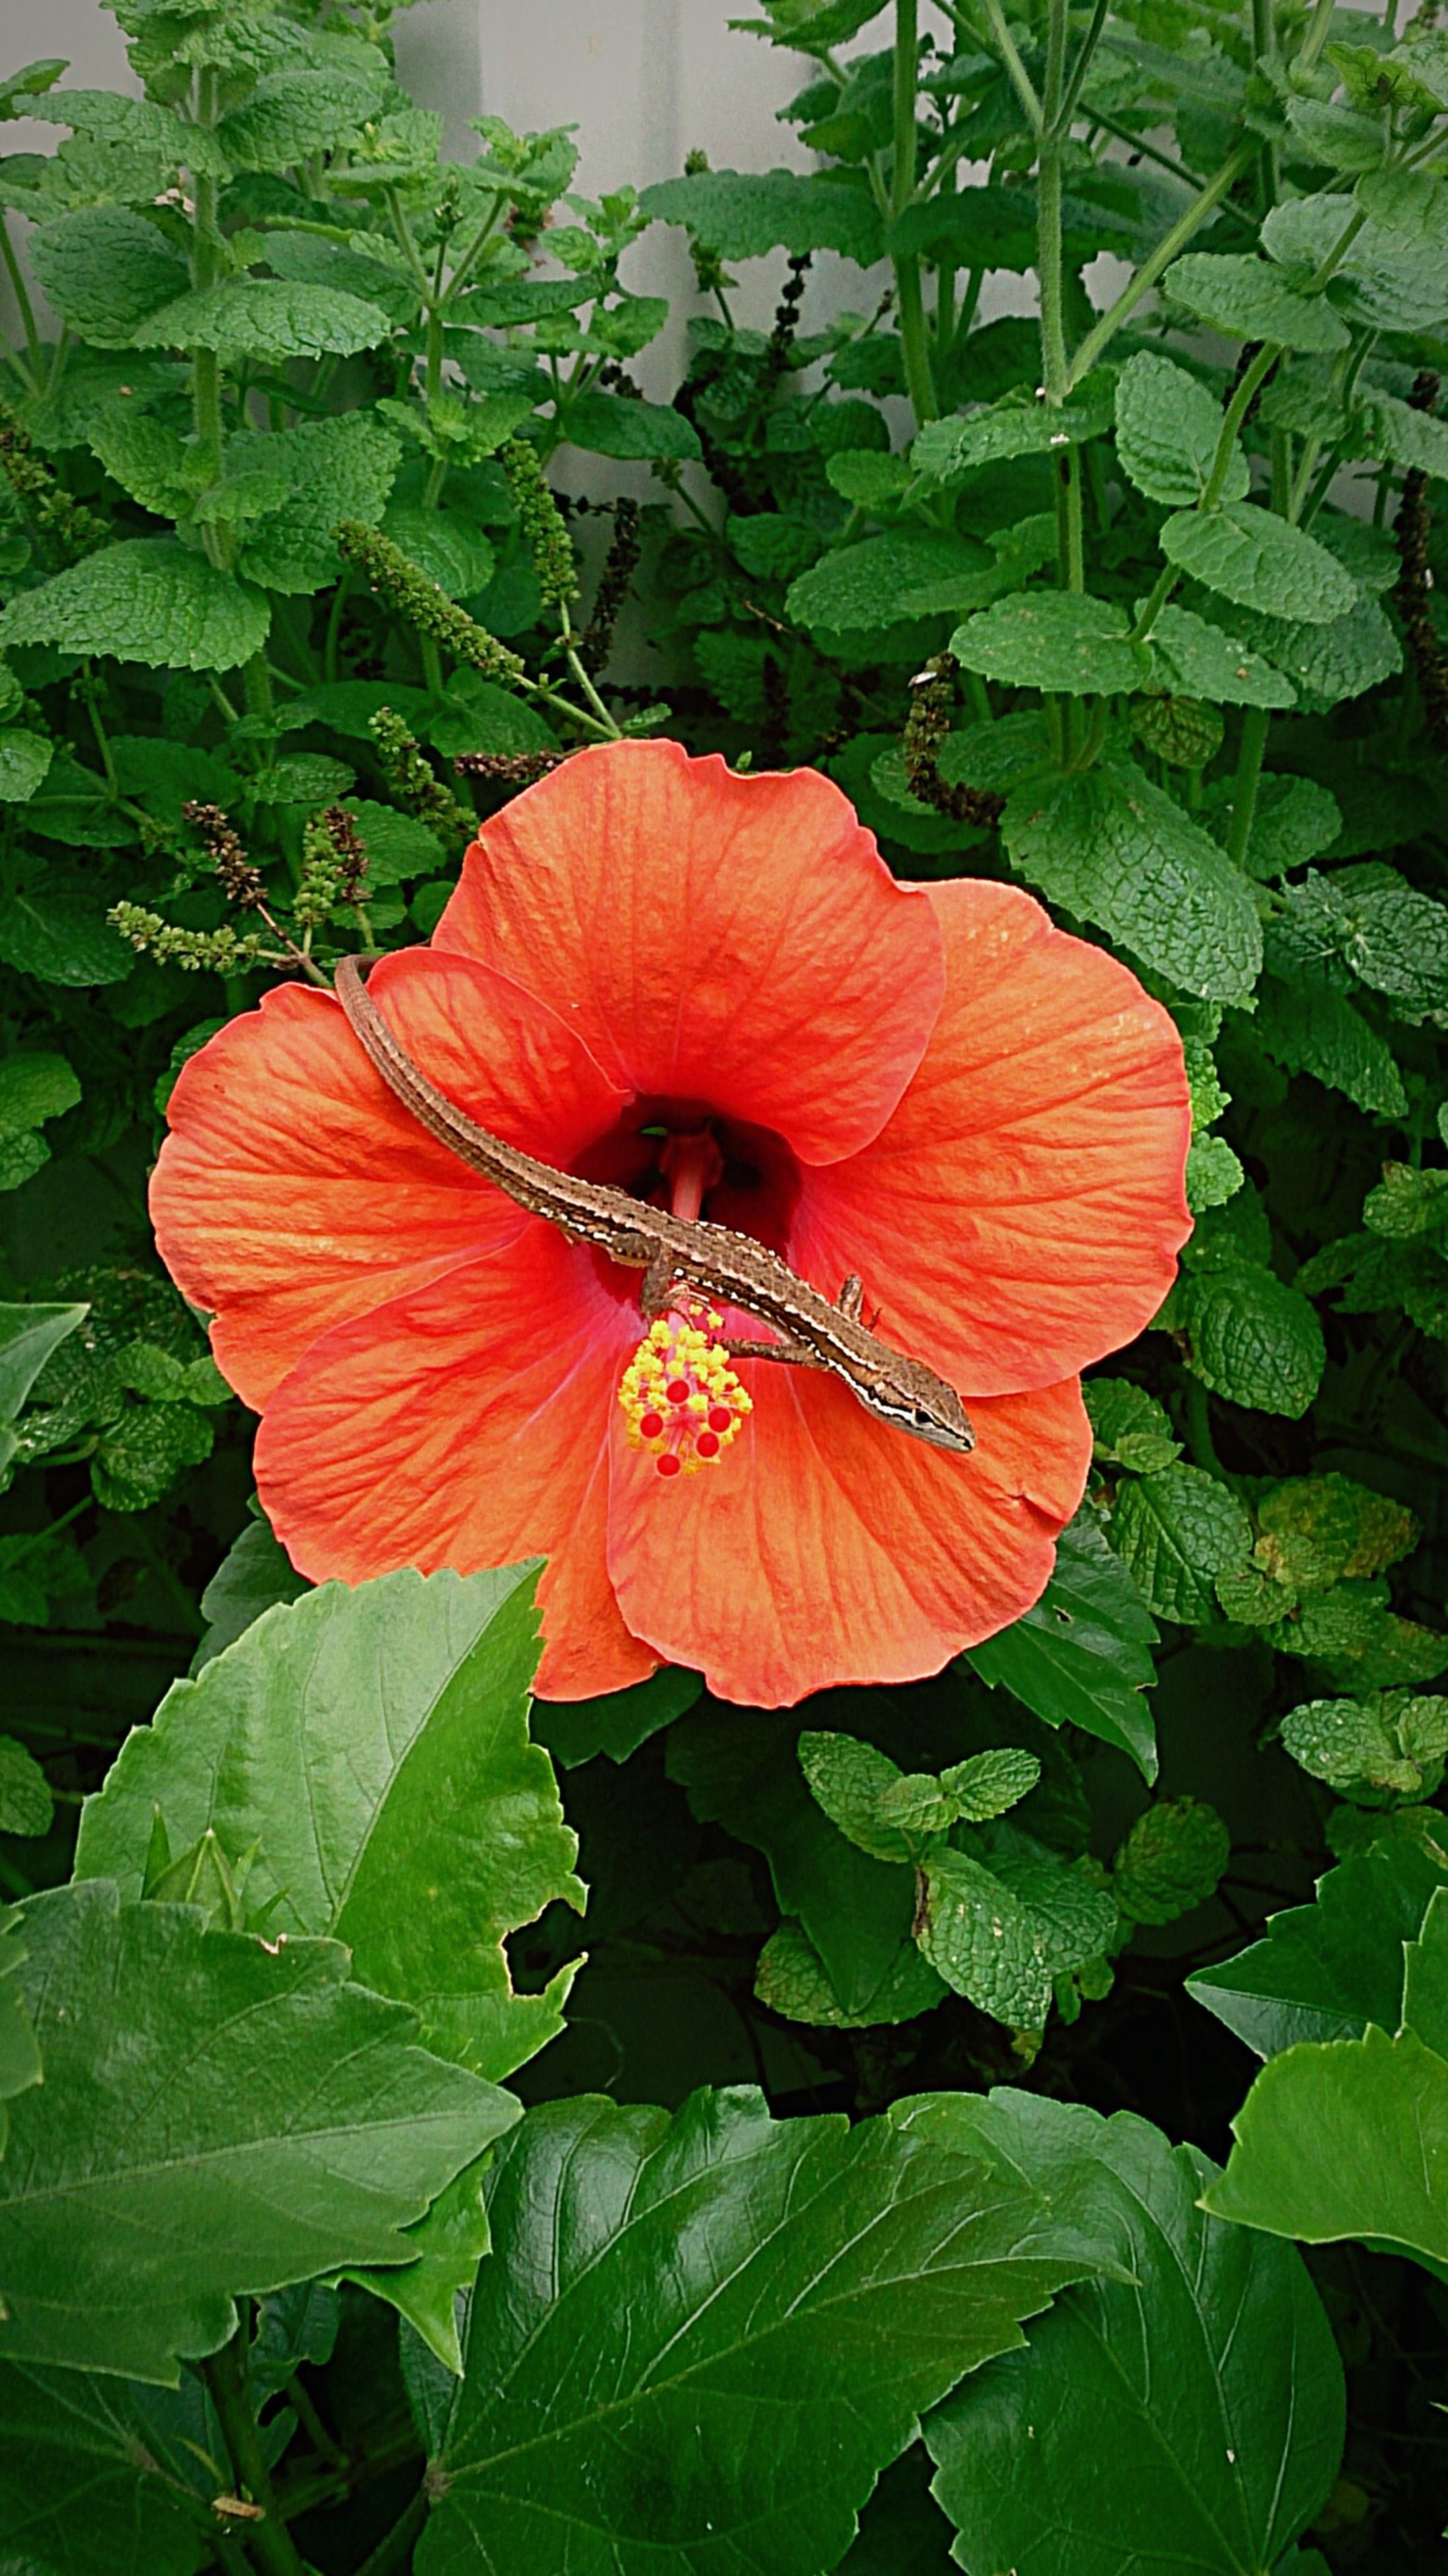 flower, freshness, fragility, petal, leaf, flower head, growth, single flower, beauty in nature, hibiscus, plant, nature, orange color, close-up, blooming, green color, stamen, pollen, high angle view, focus on foreground